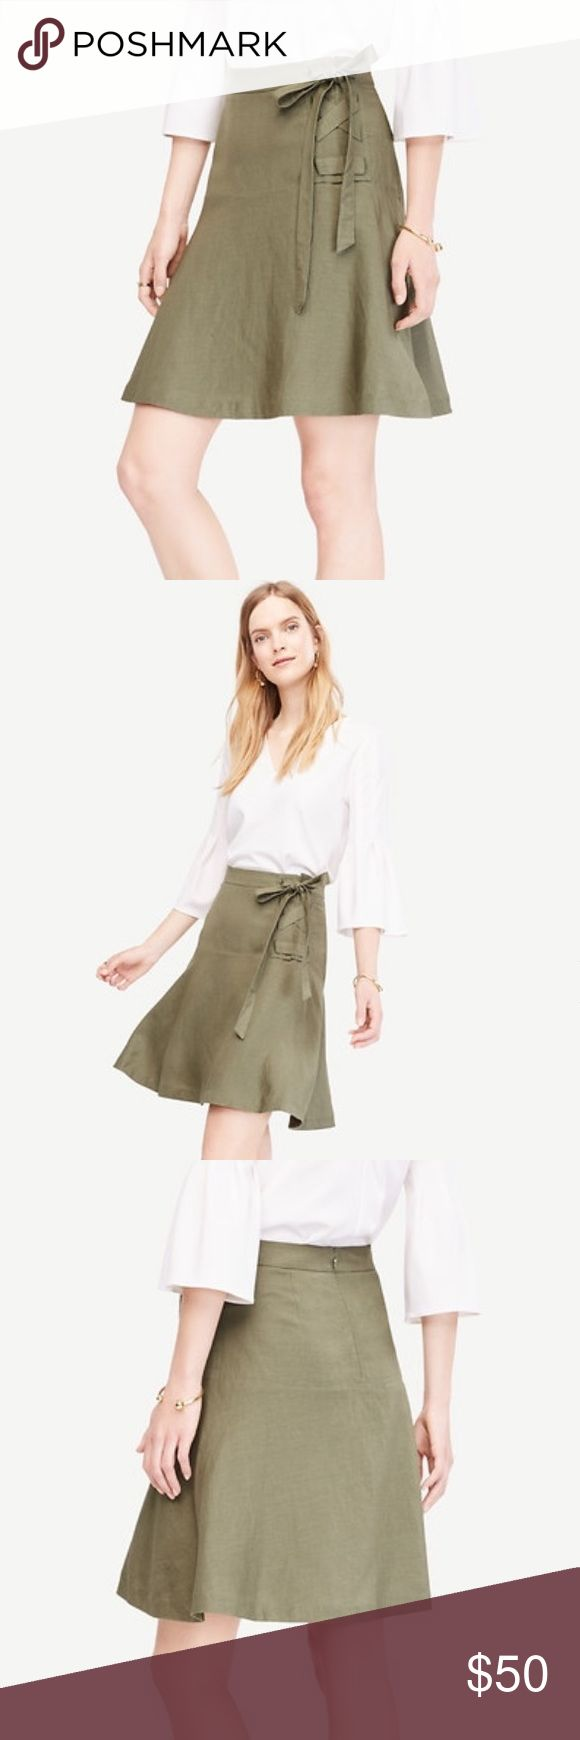 """Ann Taylor Linen Blend Lace-up Skirt Laced up with flattering side ties, this flared skirt is one of the freshest silhouettes. The color is olive green which is perfect for Fall as well as Spring and Summer. About 20"""" long. This skirt is in perfect condition and has never been worn, great for the upcoming season! Ann Taylor Skirts Mini"""